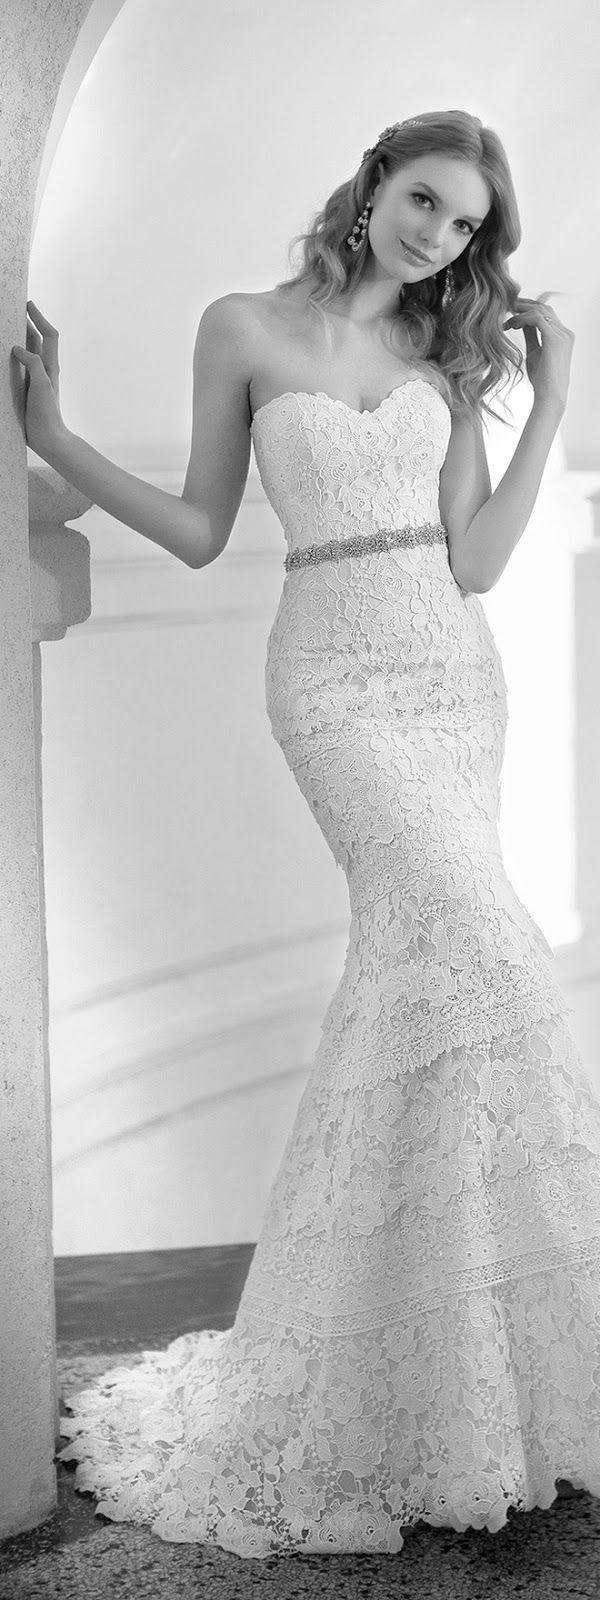 lace-wedding-dress-25-082615ch